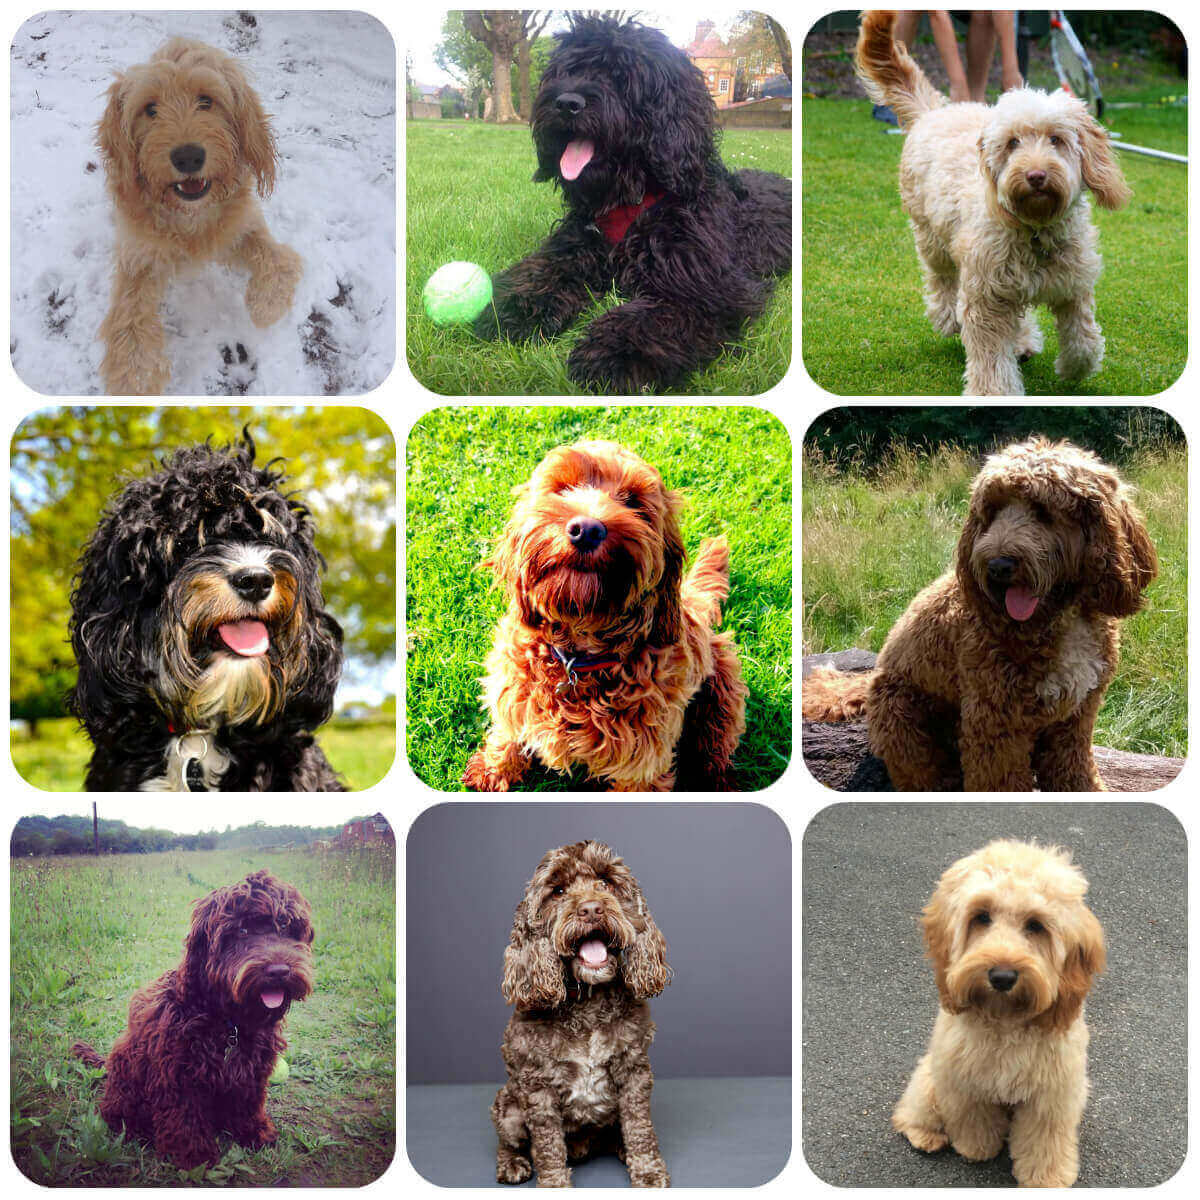 A collage of Cockapoo dogs and puppies, part of BorrowMyDoggy's guide to dog breeds.